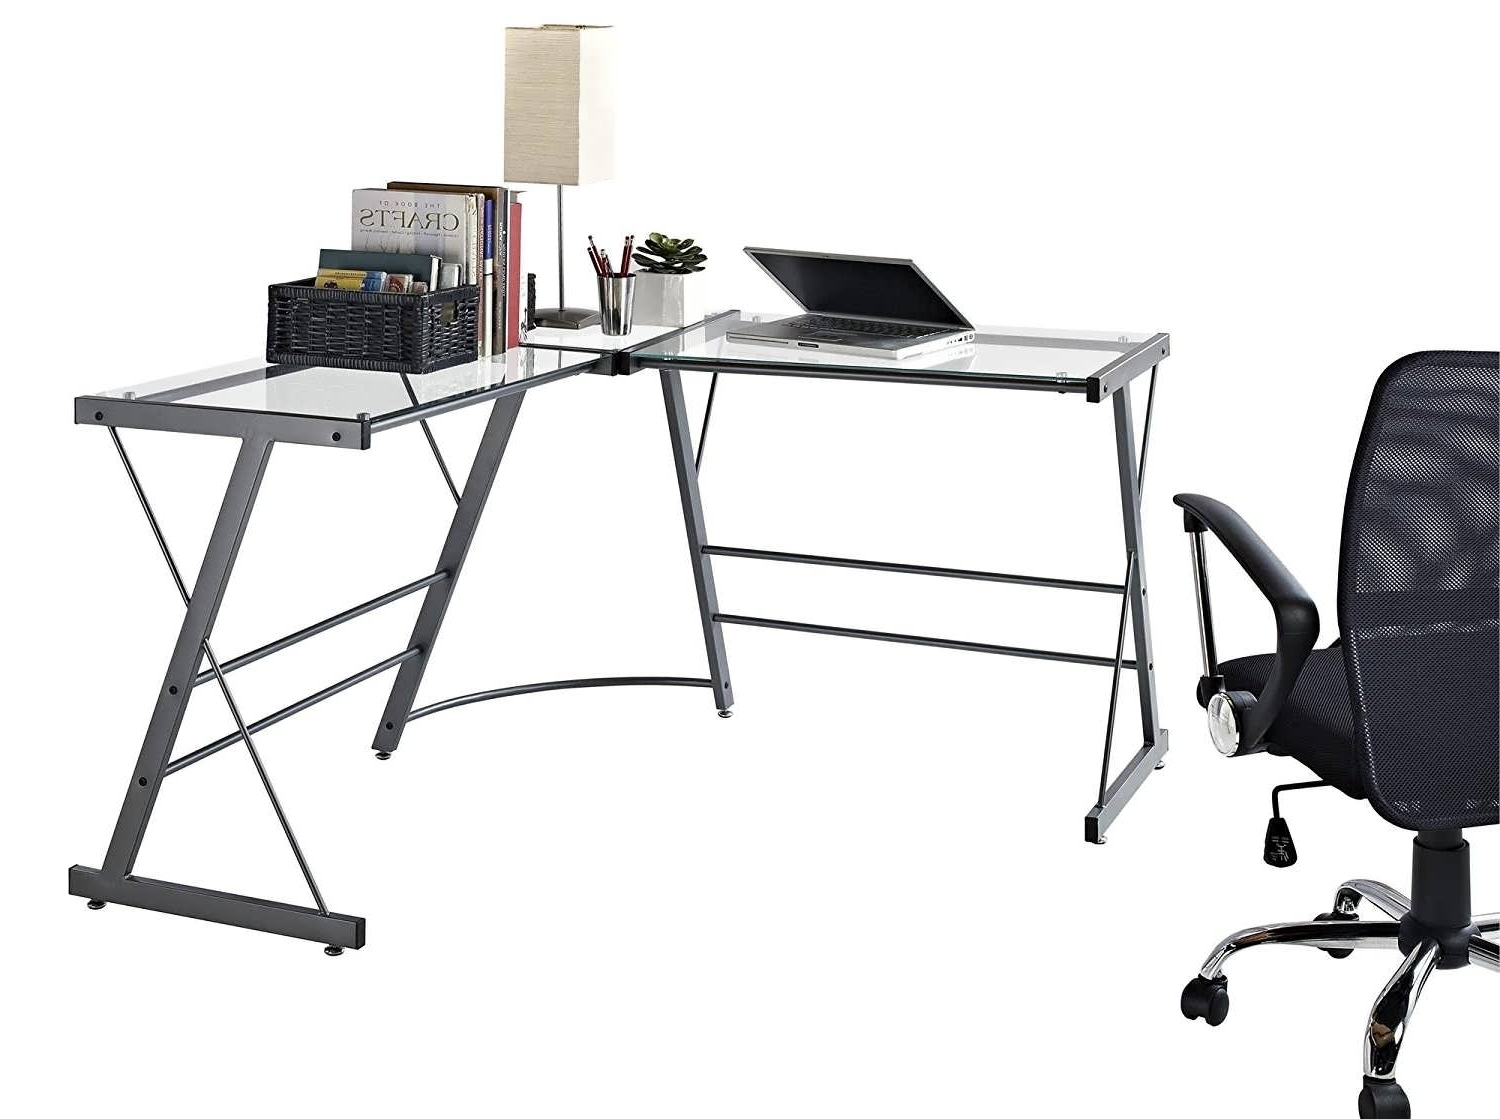 Ikea Glass Computer Desks Regarding Best And Newest Office Desk : Ikea Office Storage Glass Computer Desk Ikea U (View 15 of 20)